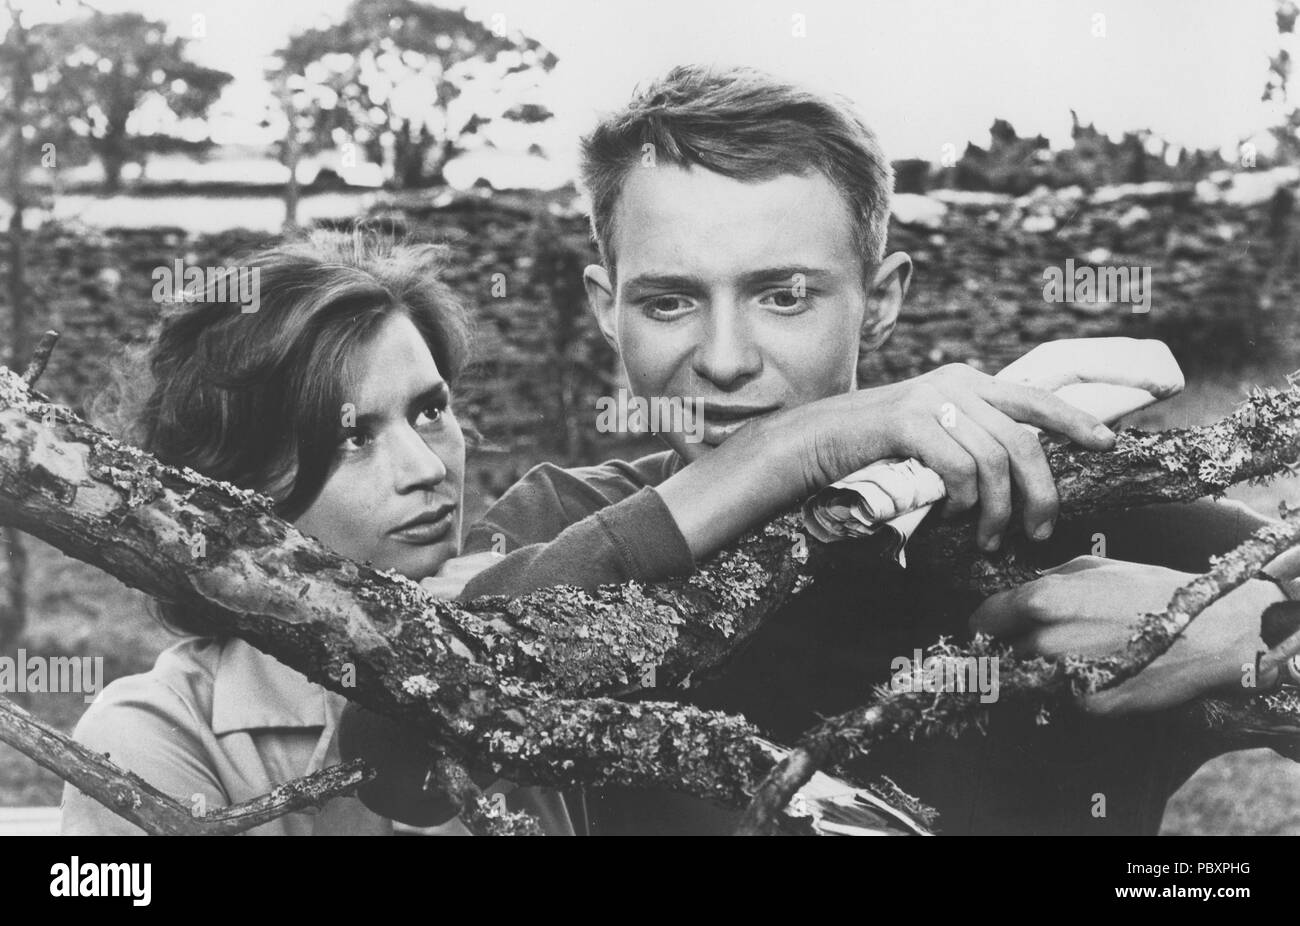 Through a Glass Darkly. Swedish film by Ingmar Bergman 1961 starring Harriet Andersson and Lars Passgård.  Ingmar Bergman. 1918-2007.  Swedish film director. - Stock Image